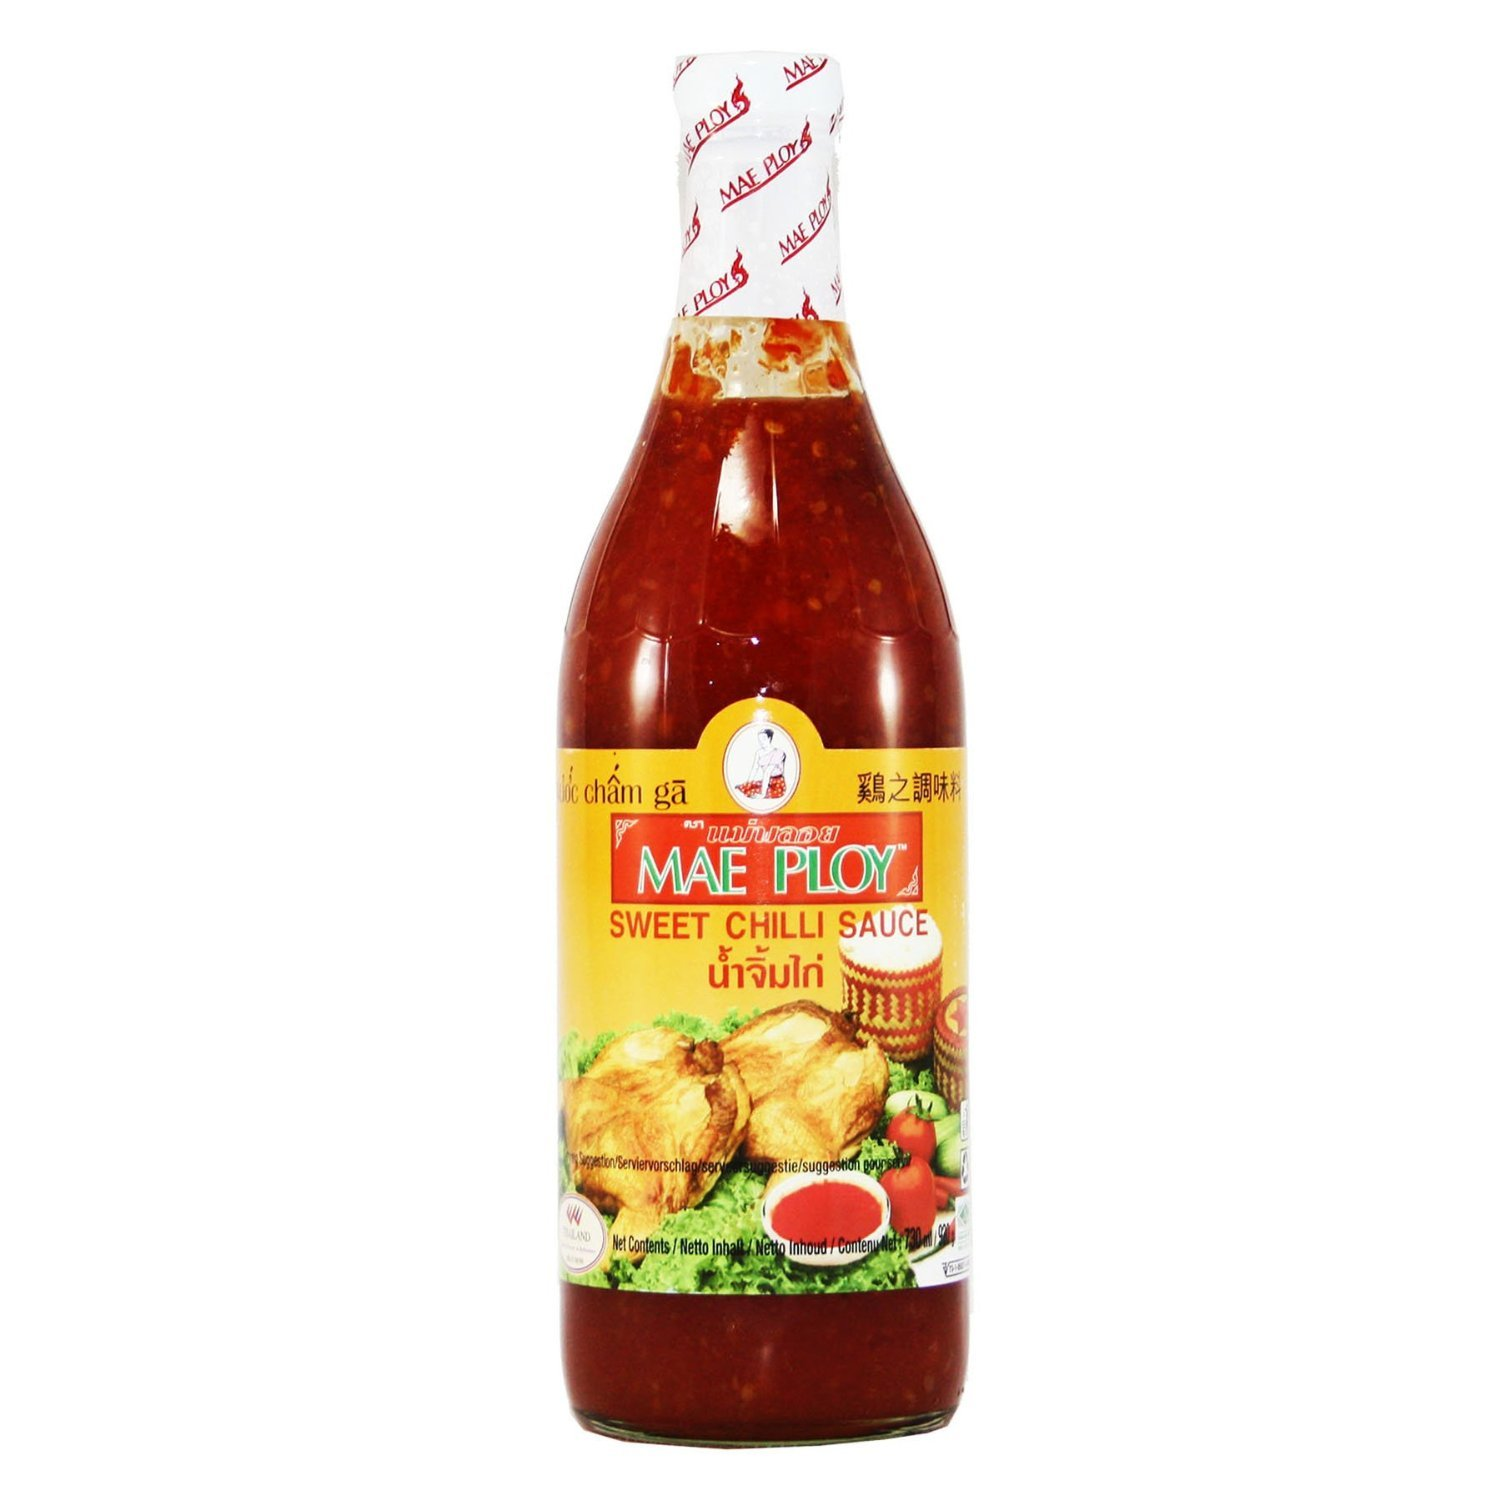 Amazon Com Mae Ploy Brand Chili Sweet Sauce 25oz Glass Bottle Grocery Gourmet Food